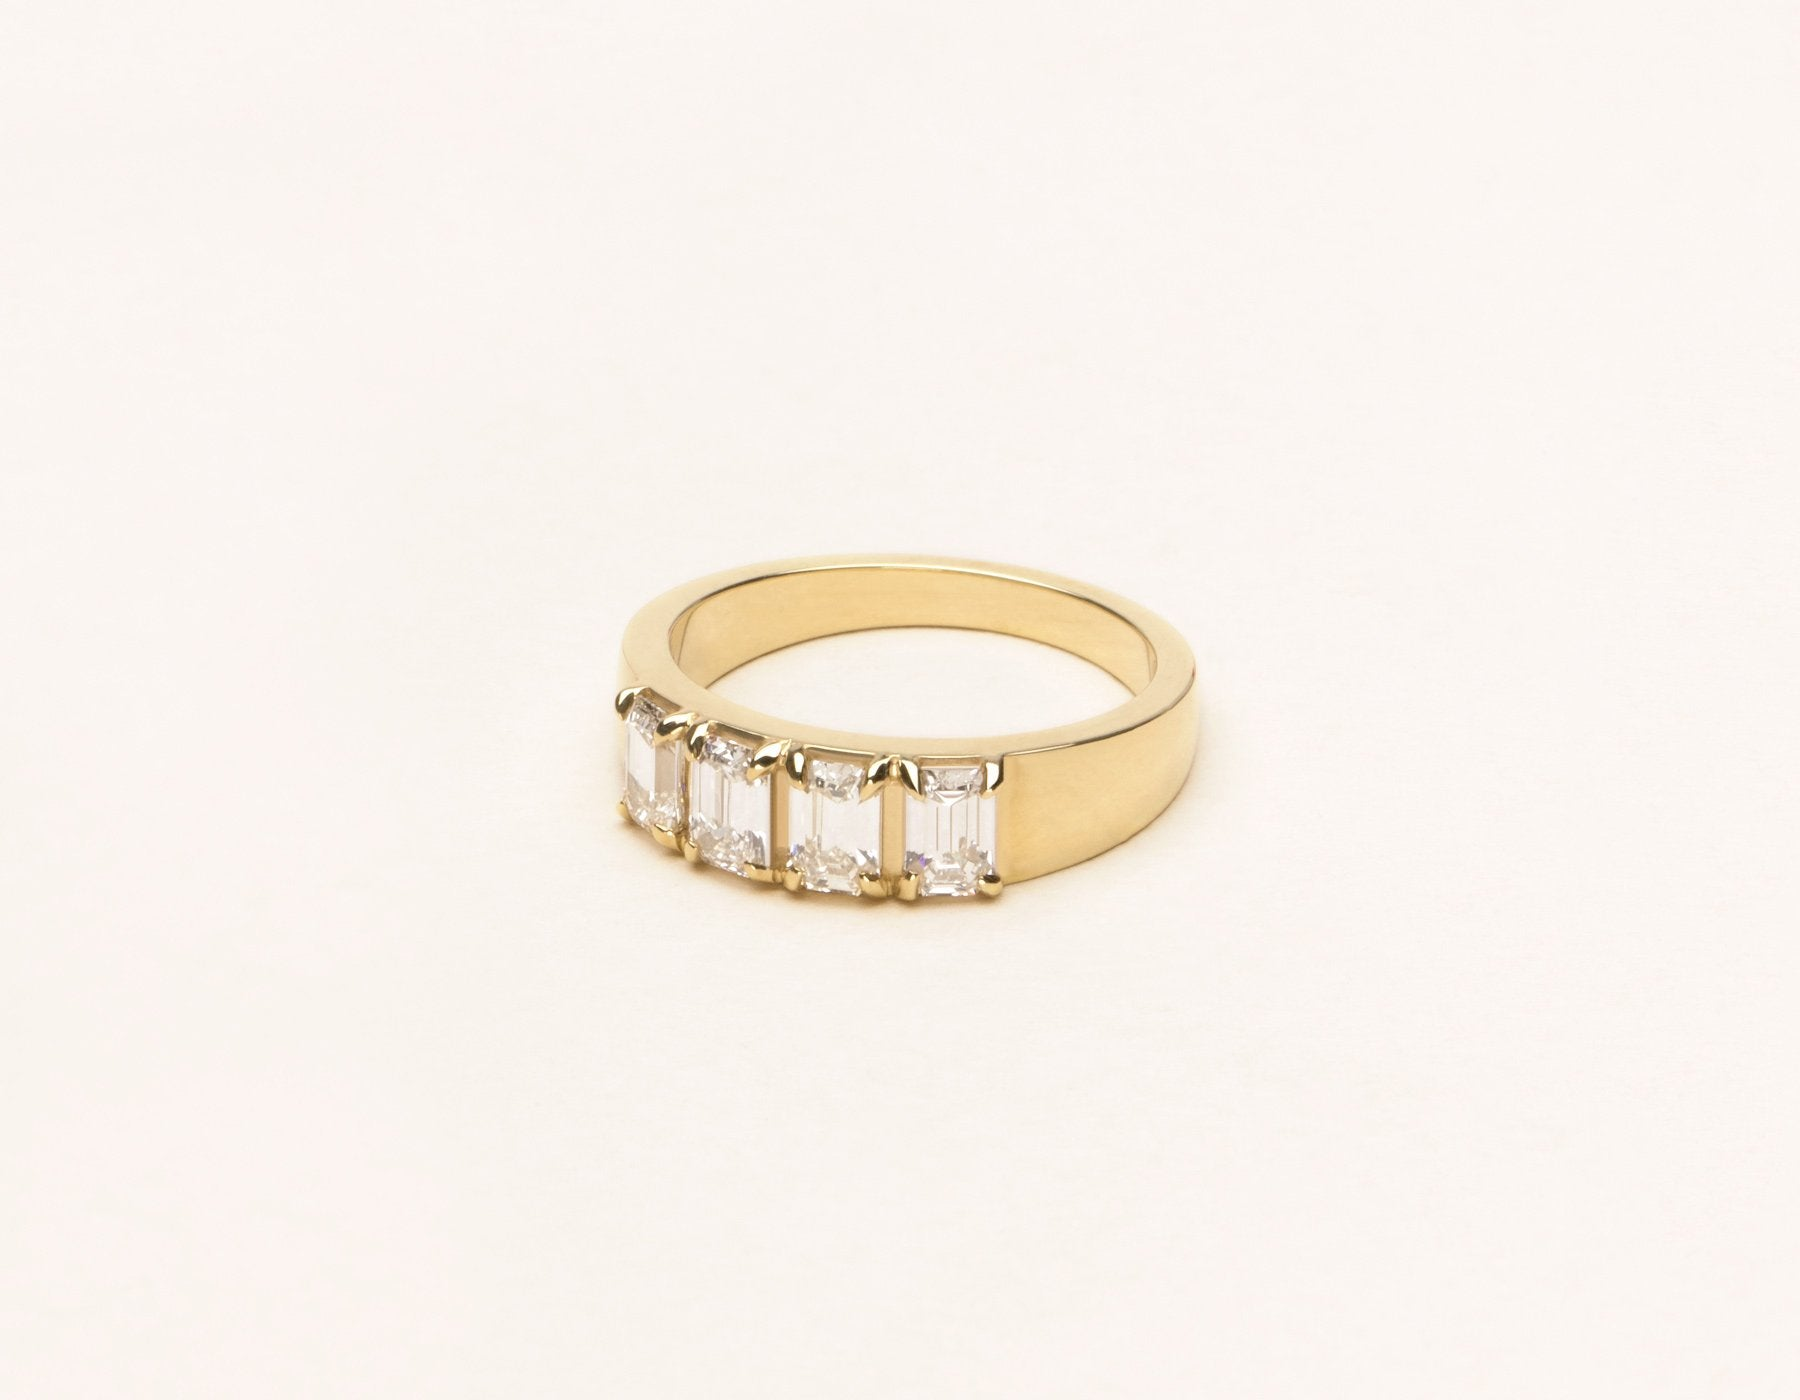 Simple elegant 14k solid gold Emerald Tetrad Band diamond ring by Vrai and Oro minimalist jewelry, 14K Yellow Gold